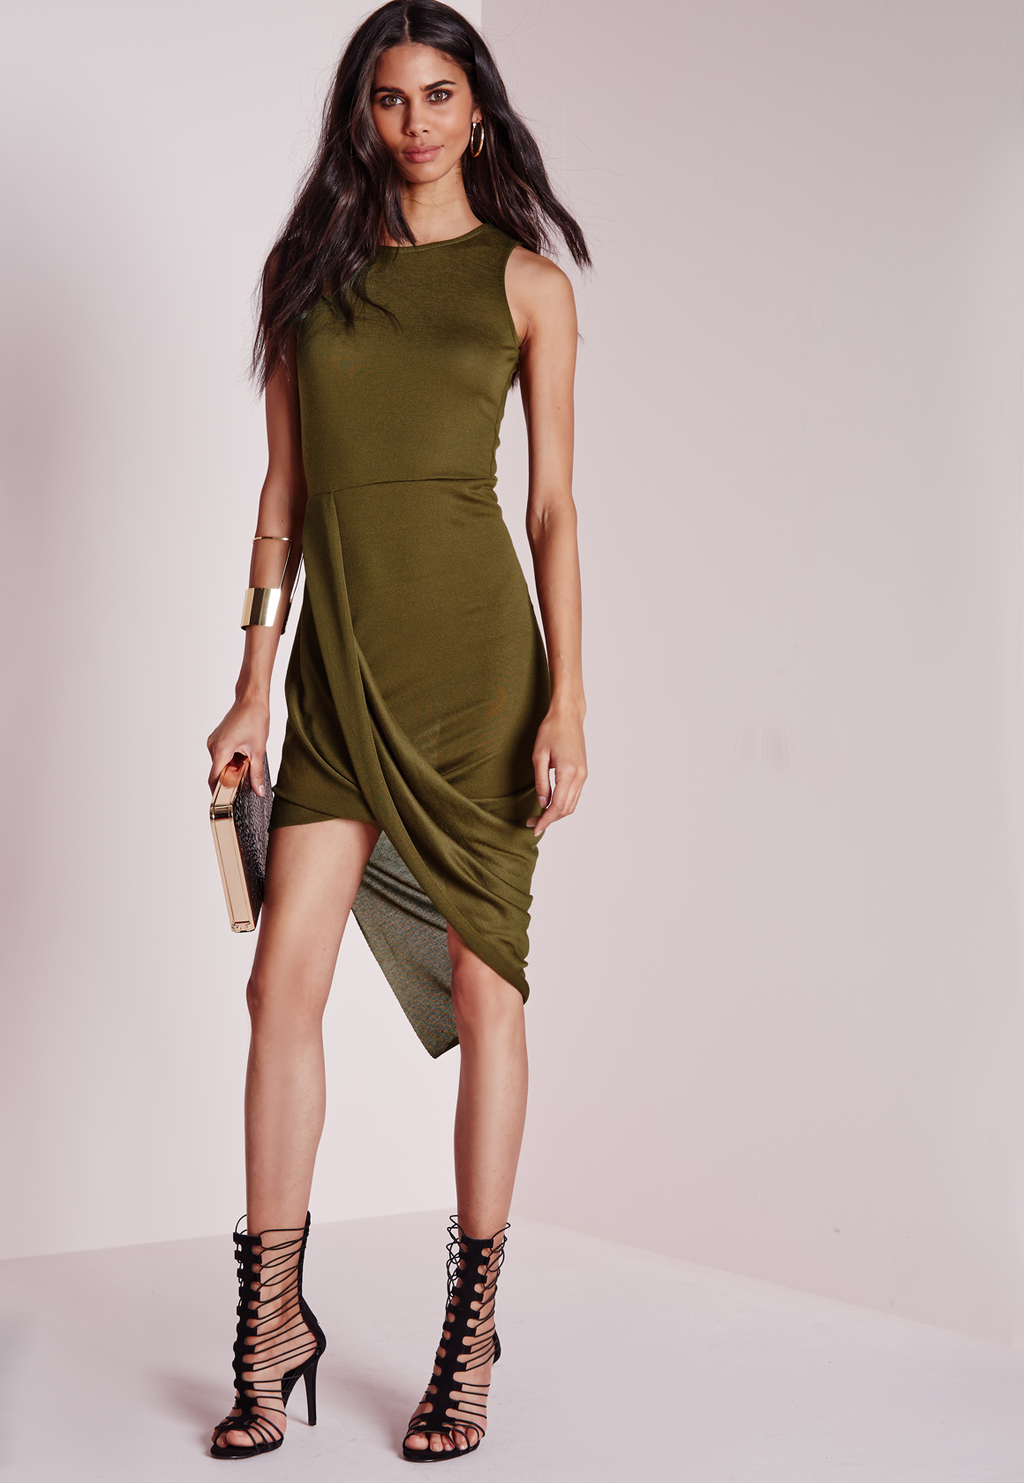 Wrap Front Bodycon Dress Khaki, Beige - neckline: round neck; pattern: plain; sleeve style: sleeveless; style: bodycon; predominant colour: khaki; occasions: evening; length: just above the knee; fit: body skimming; hip detail: adds bulk at the hips; sleeve length: sleeveless; pattern type: fabric; texture group: jersey - stretchy/drapey; season: a/w 2015; wardrobe: event